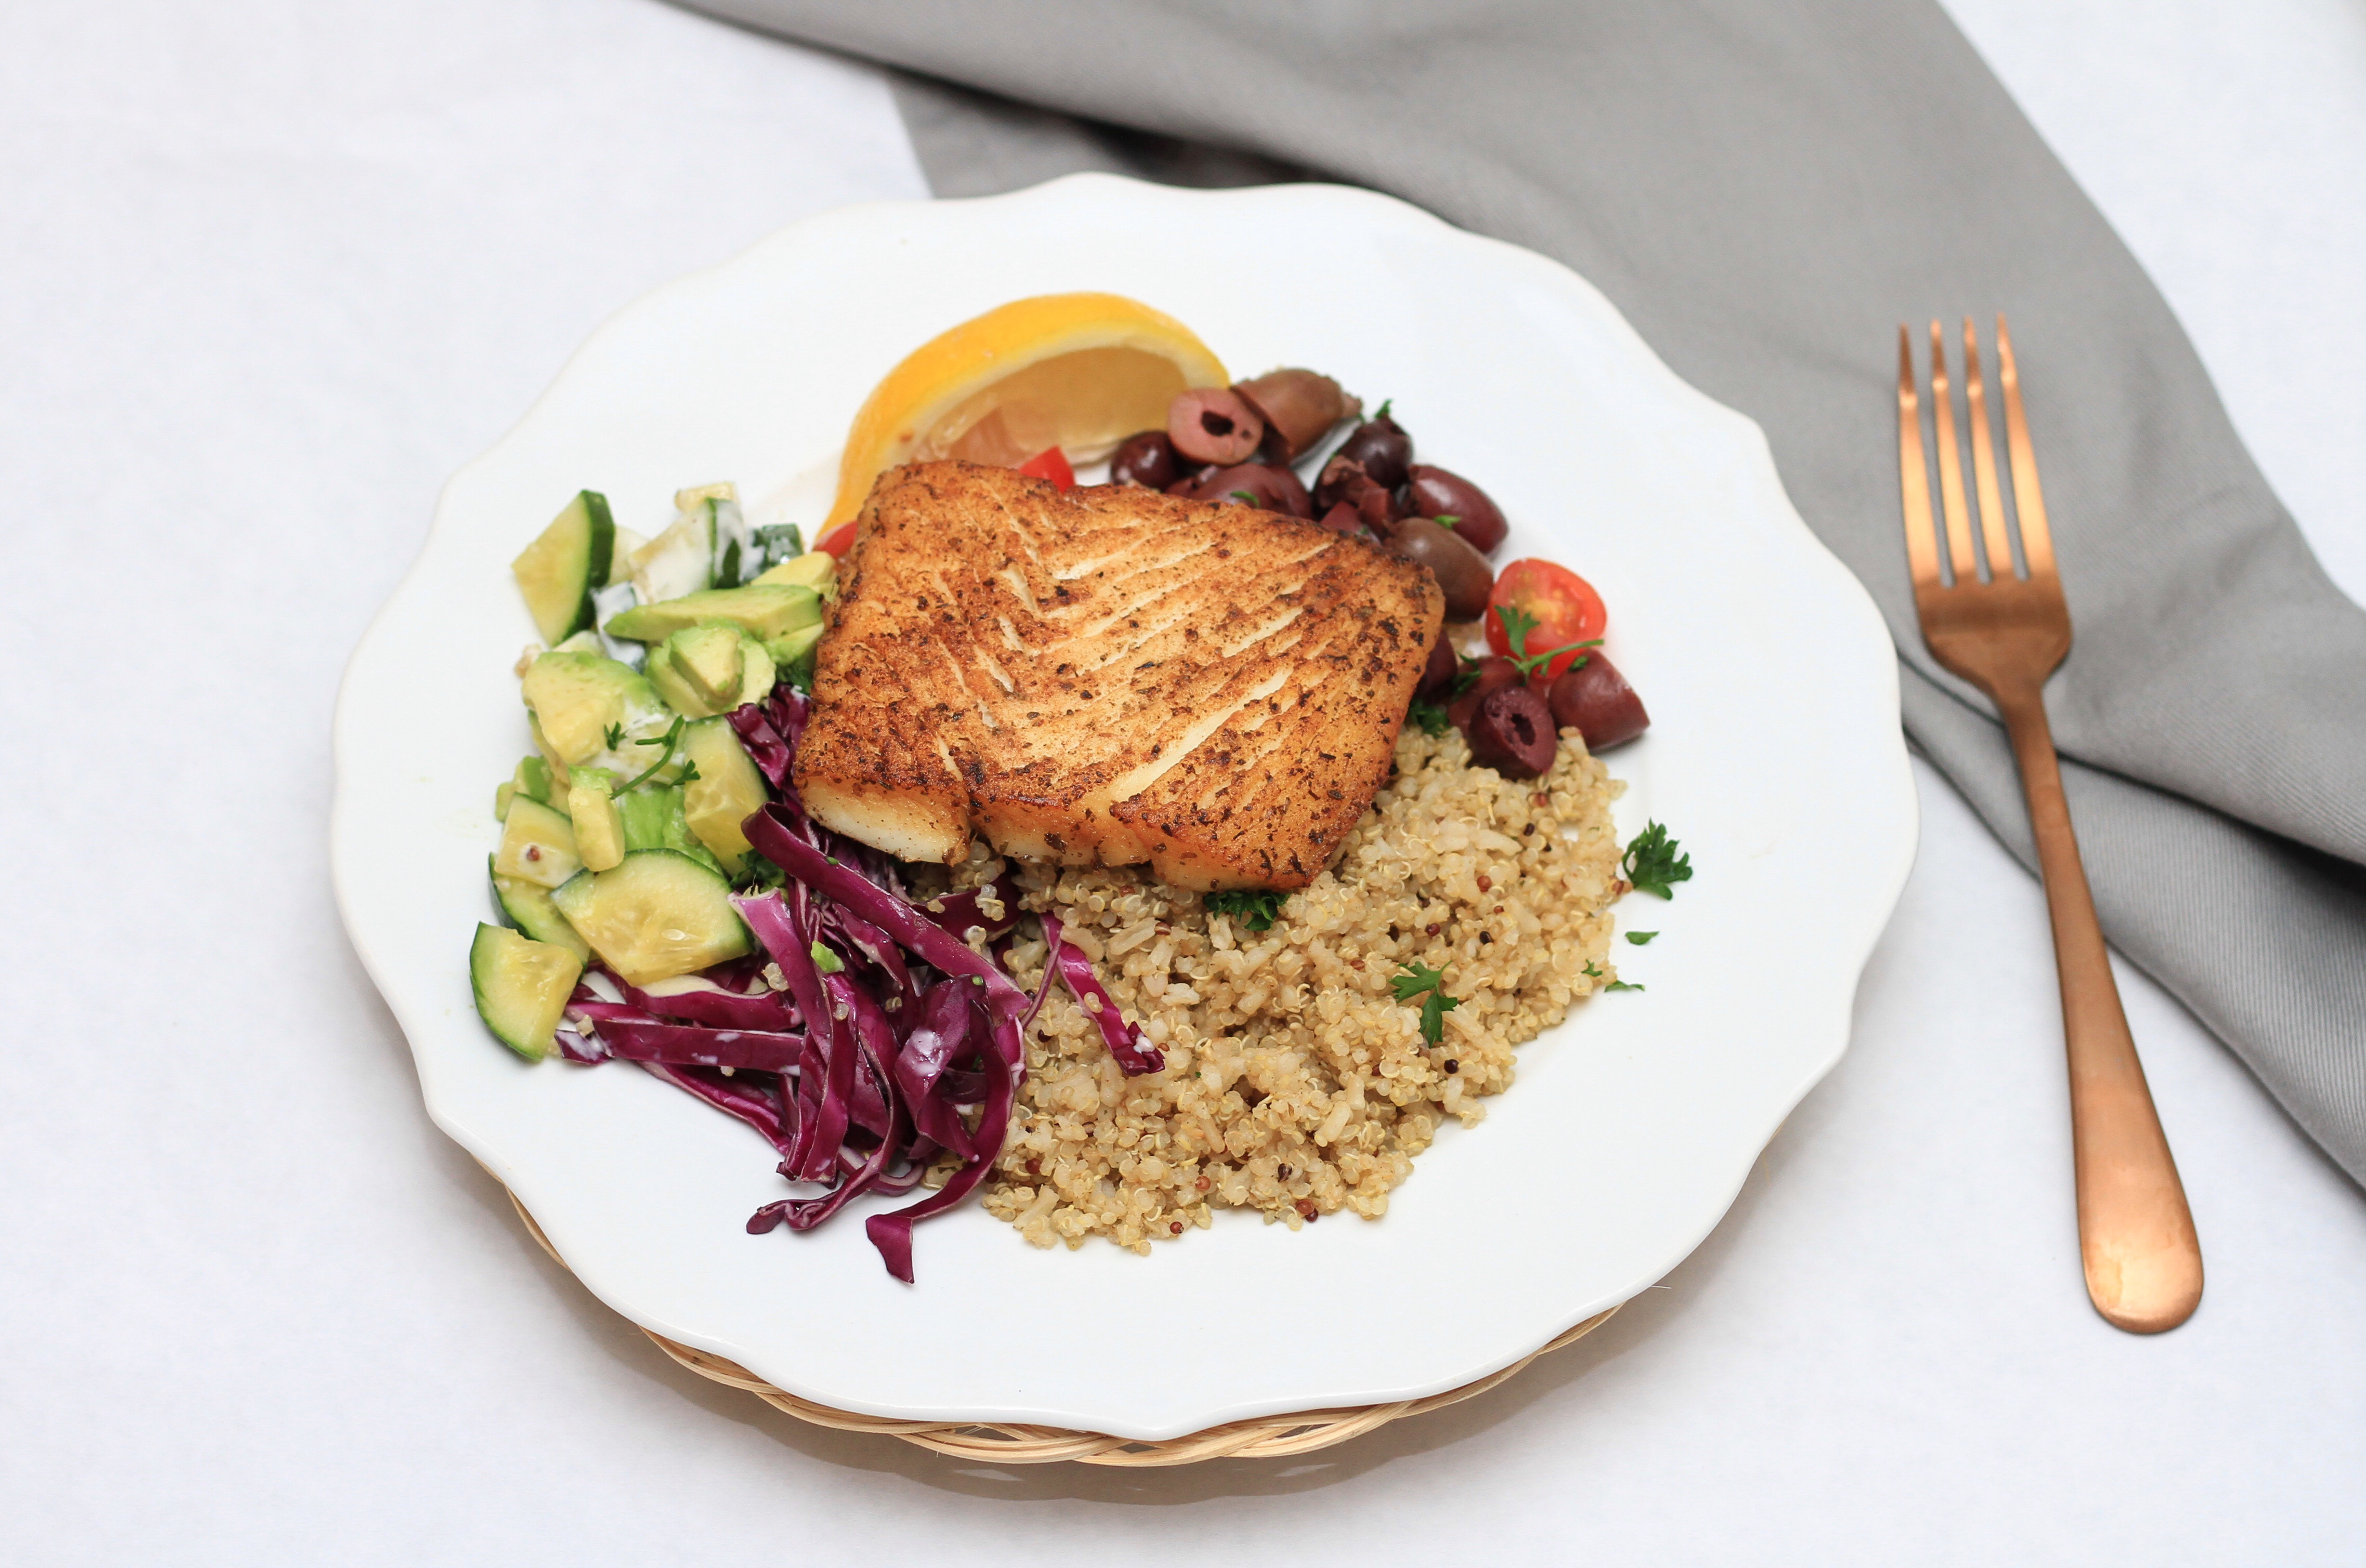 mediterranean fish bowl pan seared halibut wild caught Alaskan sea food mom blog mommy blogger dad blog traveling family recipe food foodie halibut alaskan halibut fish for kids homeschooling cooking with kids traveling with kids